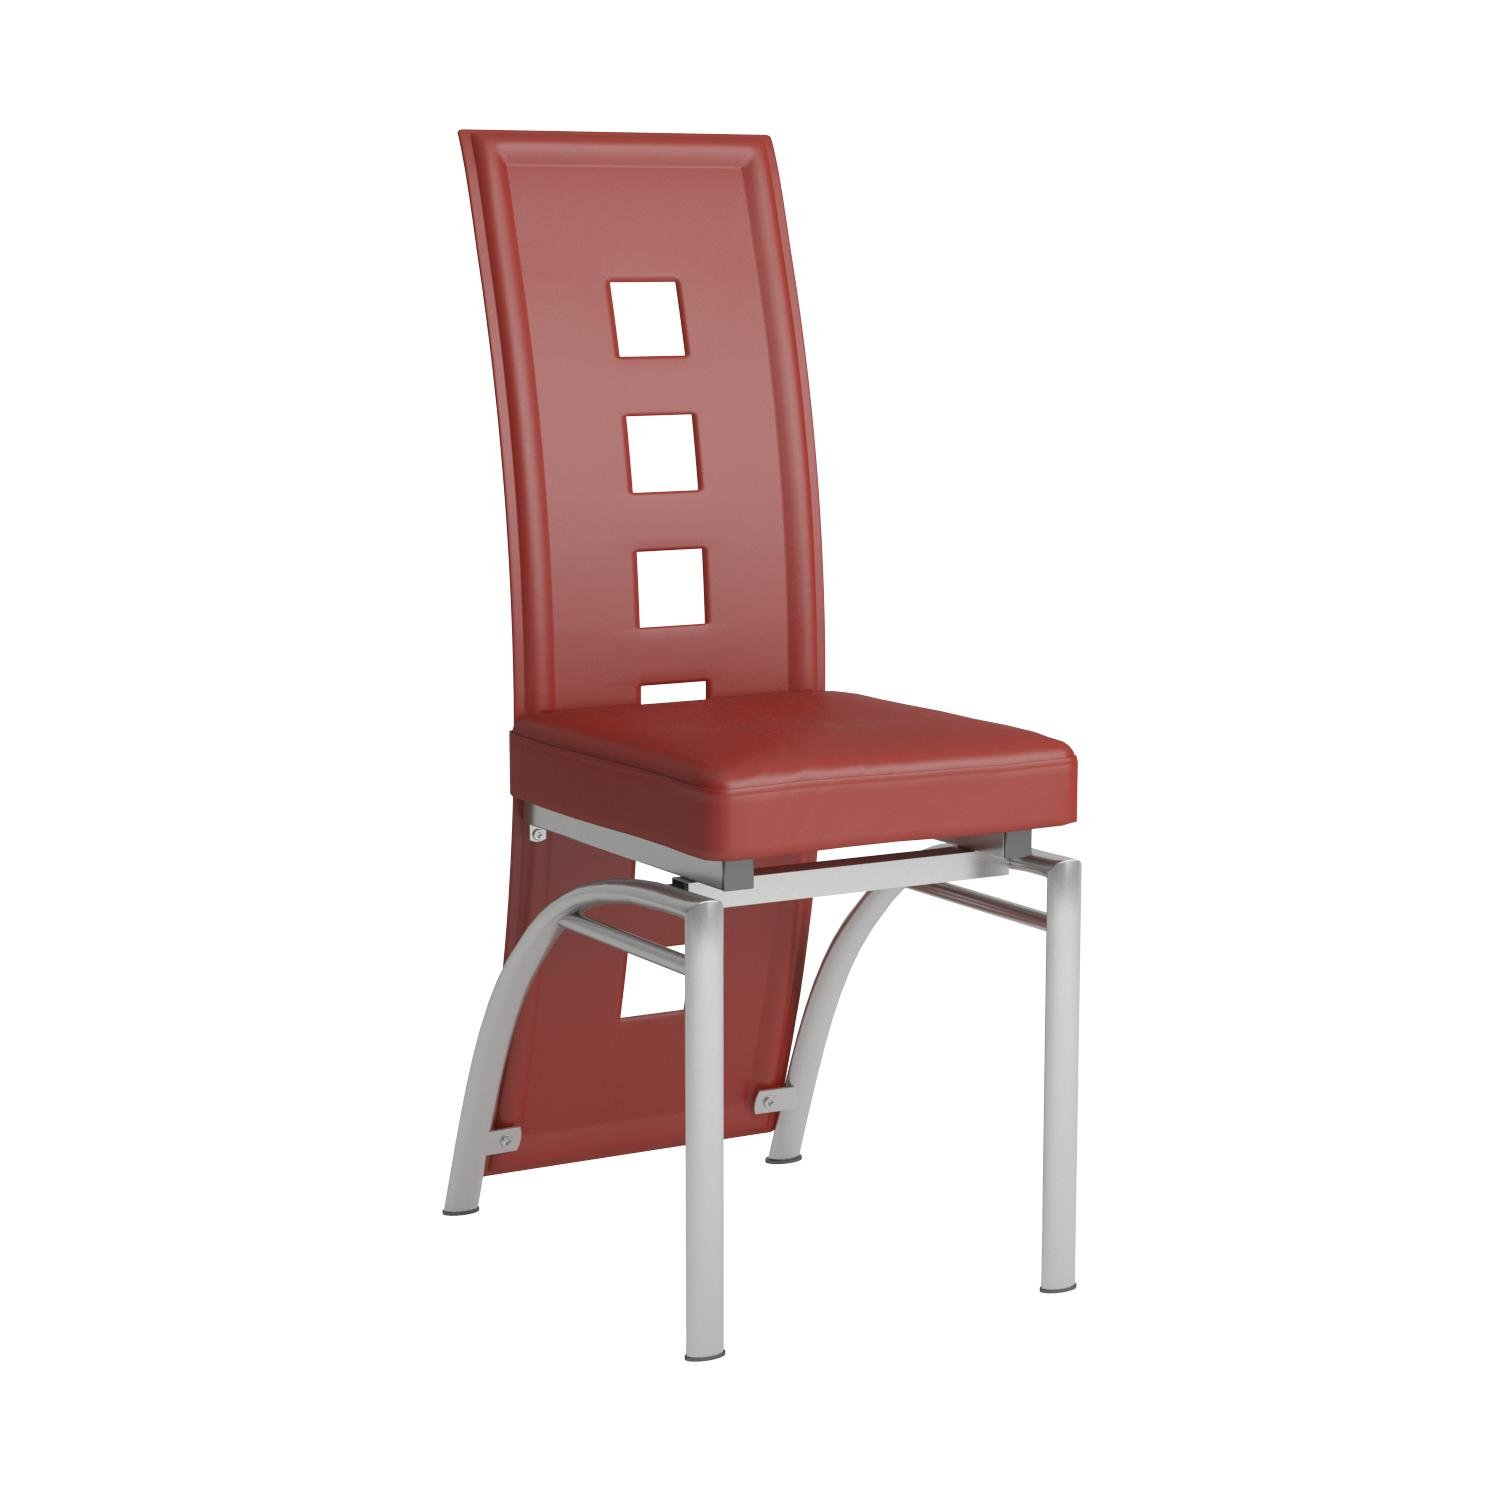 Los Feliz Dining Chairs Red and Silver Set of 2